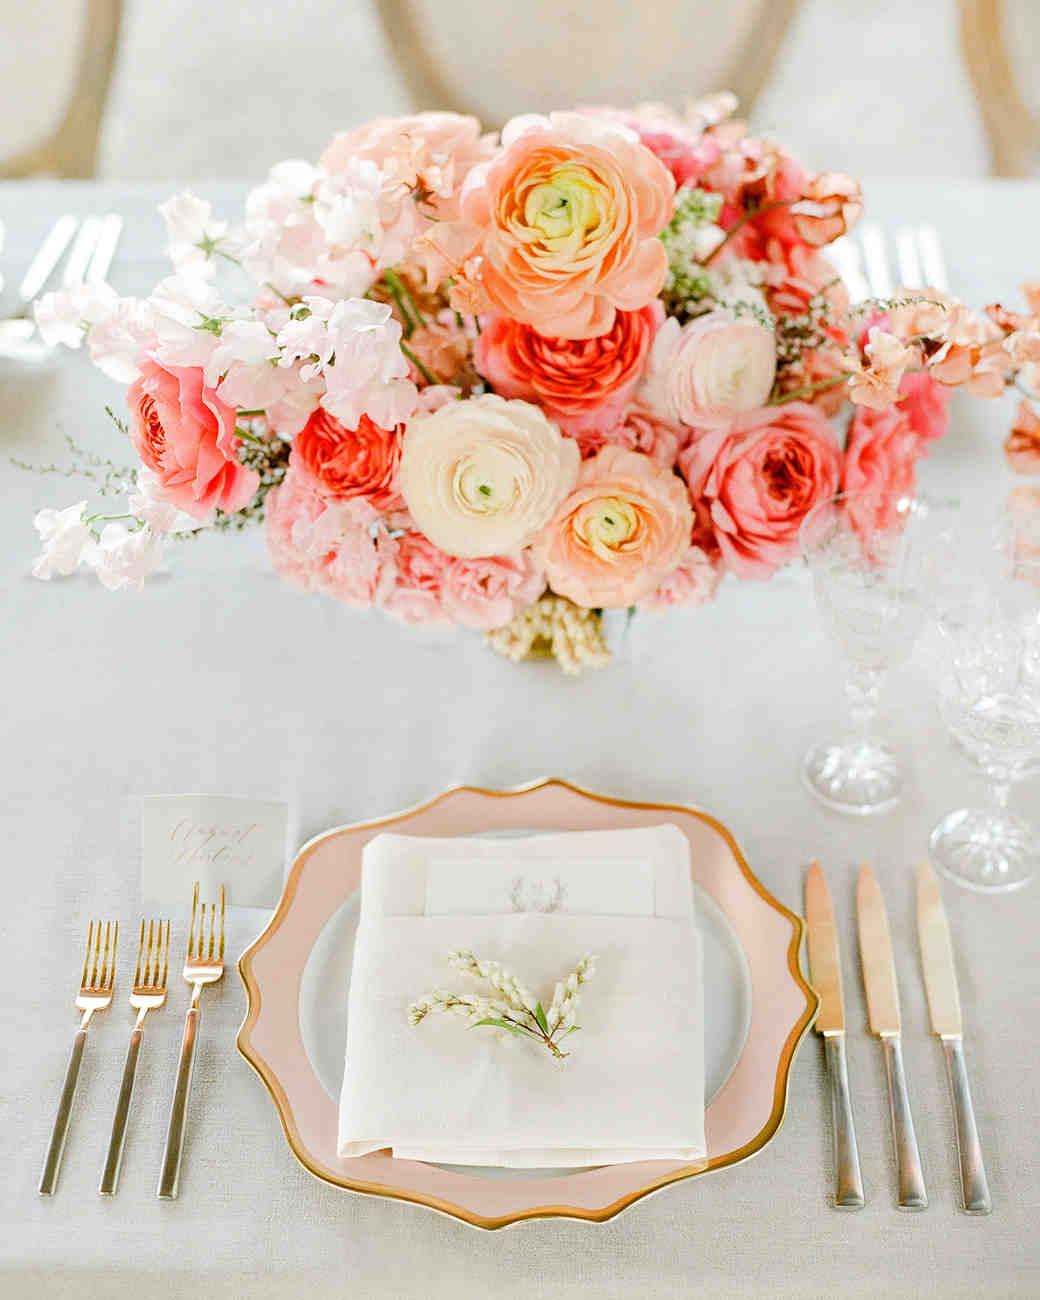 marianne patrick reception place setting